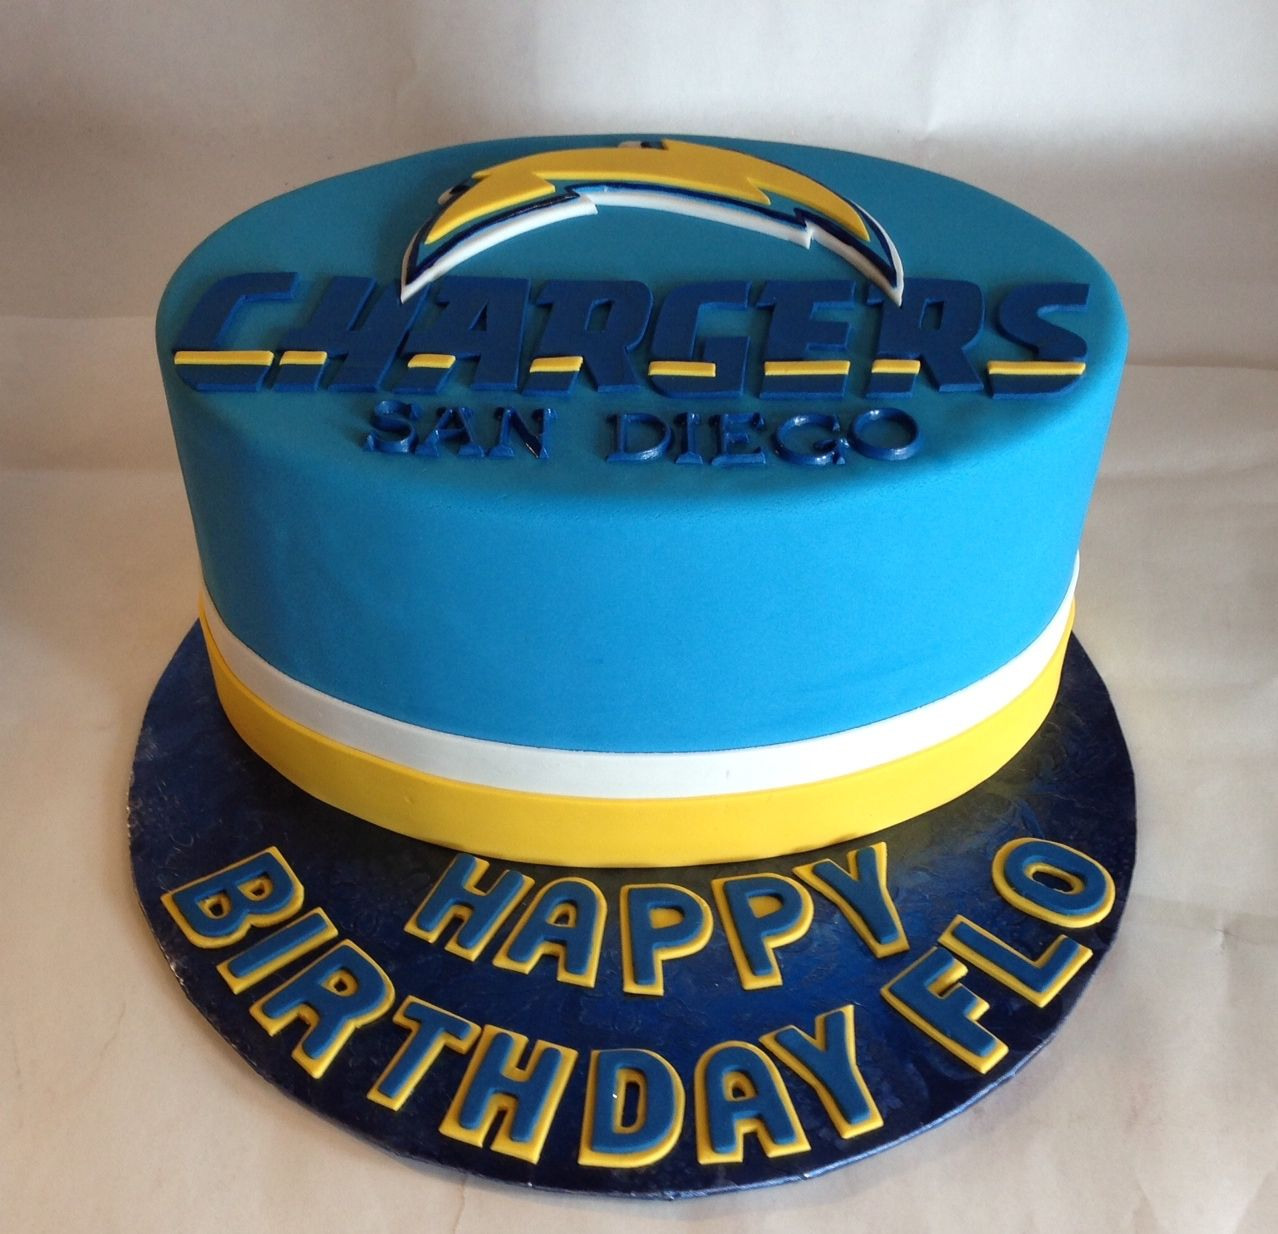 Superb San Diego Chargers Fondant Cake Dad Birthday Cakes Personalised Birthday Cards Veneteletsinfo